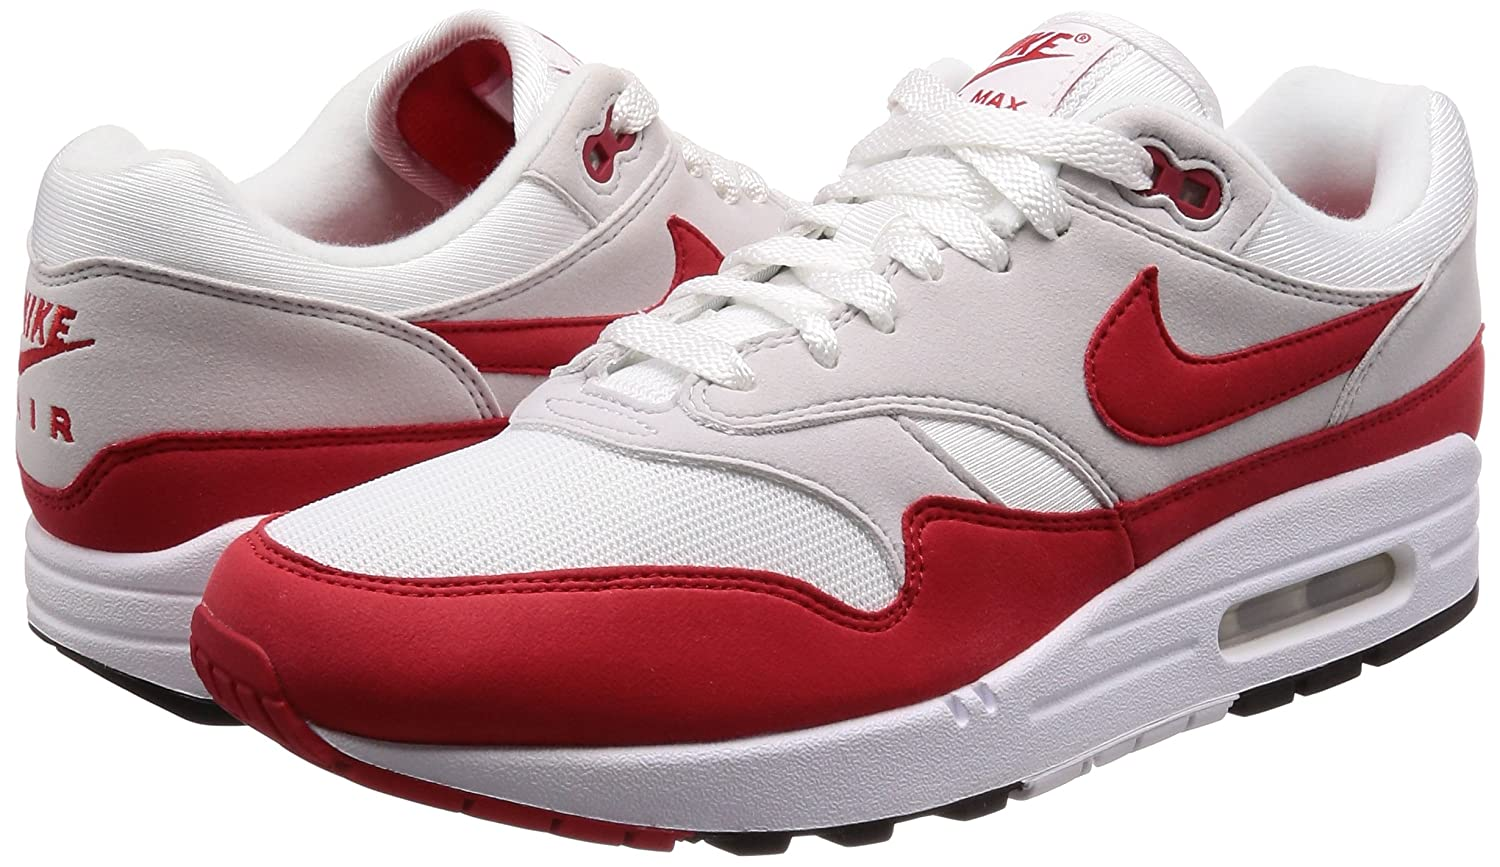 daa1c14c9acc8d Nike Air Max 1 Anniversary OG - White University Red Trainer  Amazon.co.uk   Shoes   Bags